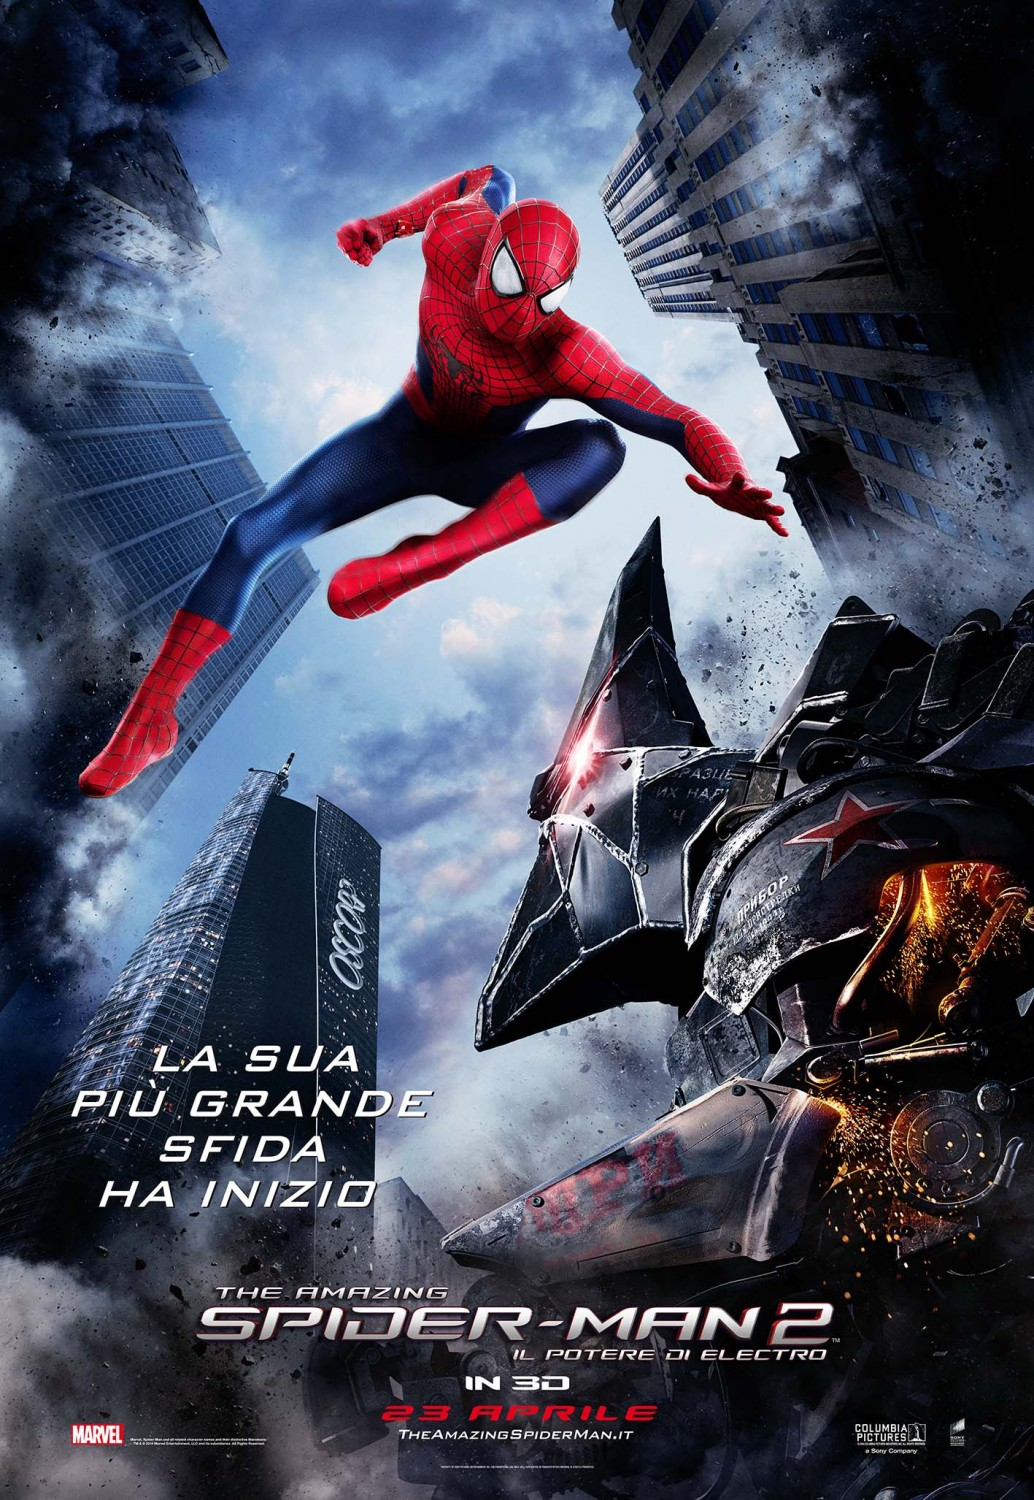 spiderman two new int l posters for the amazing spider man 2